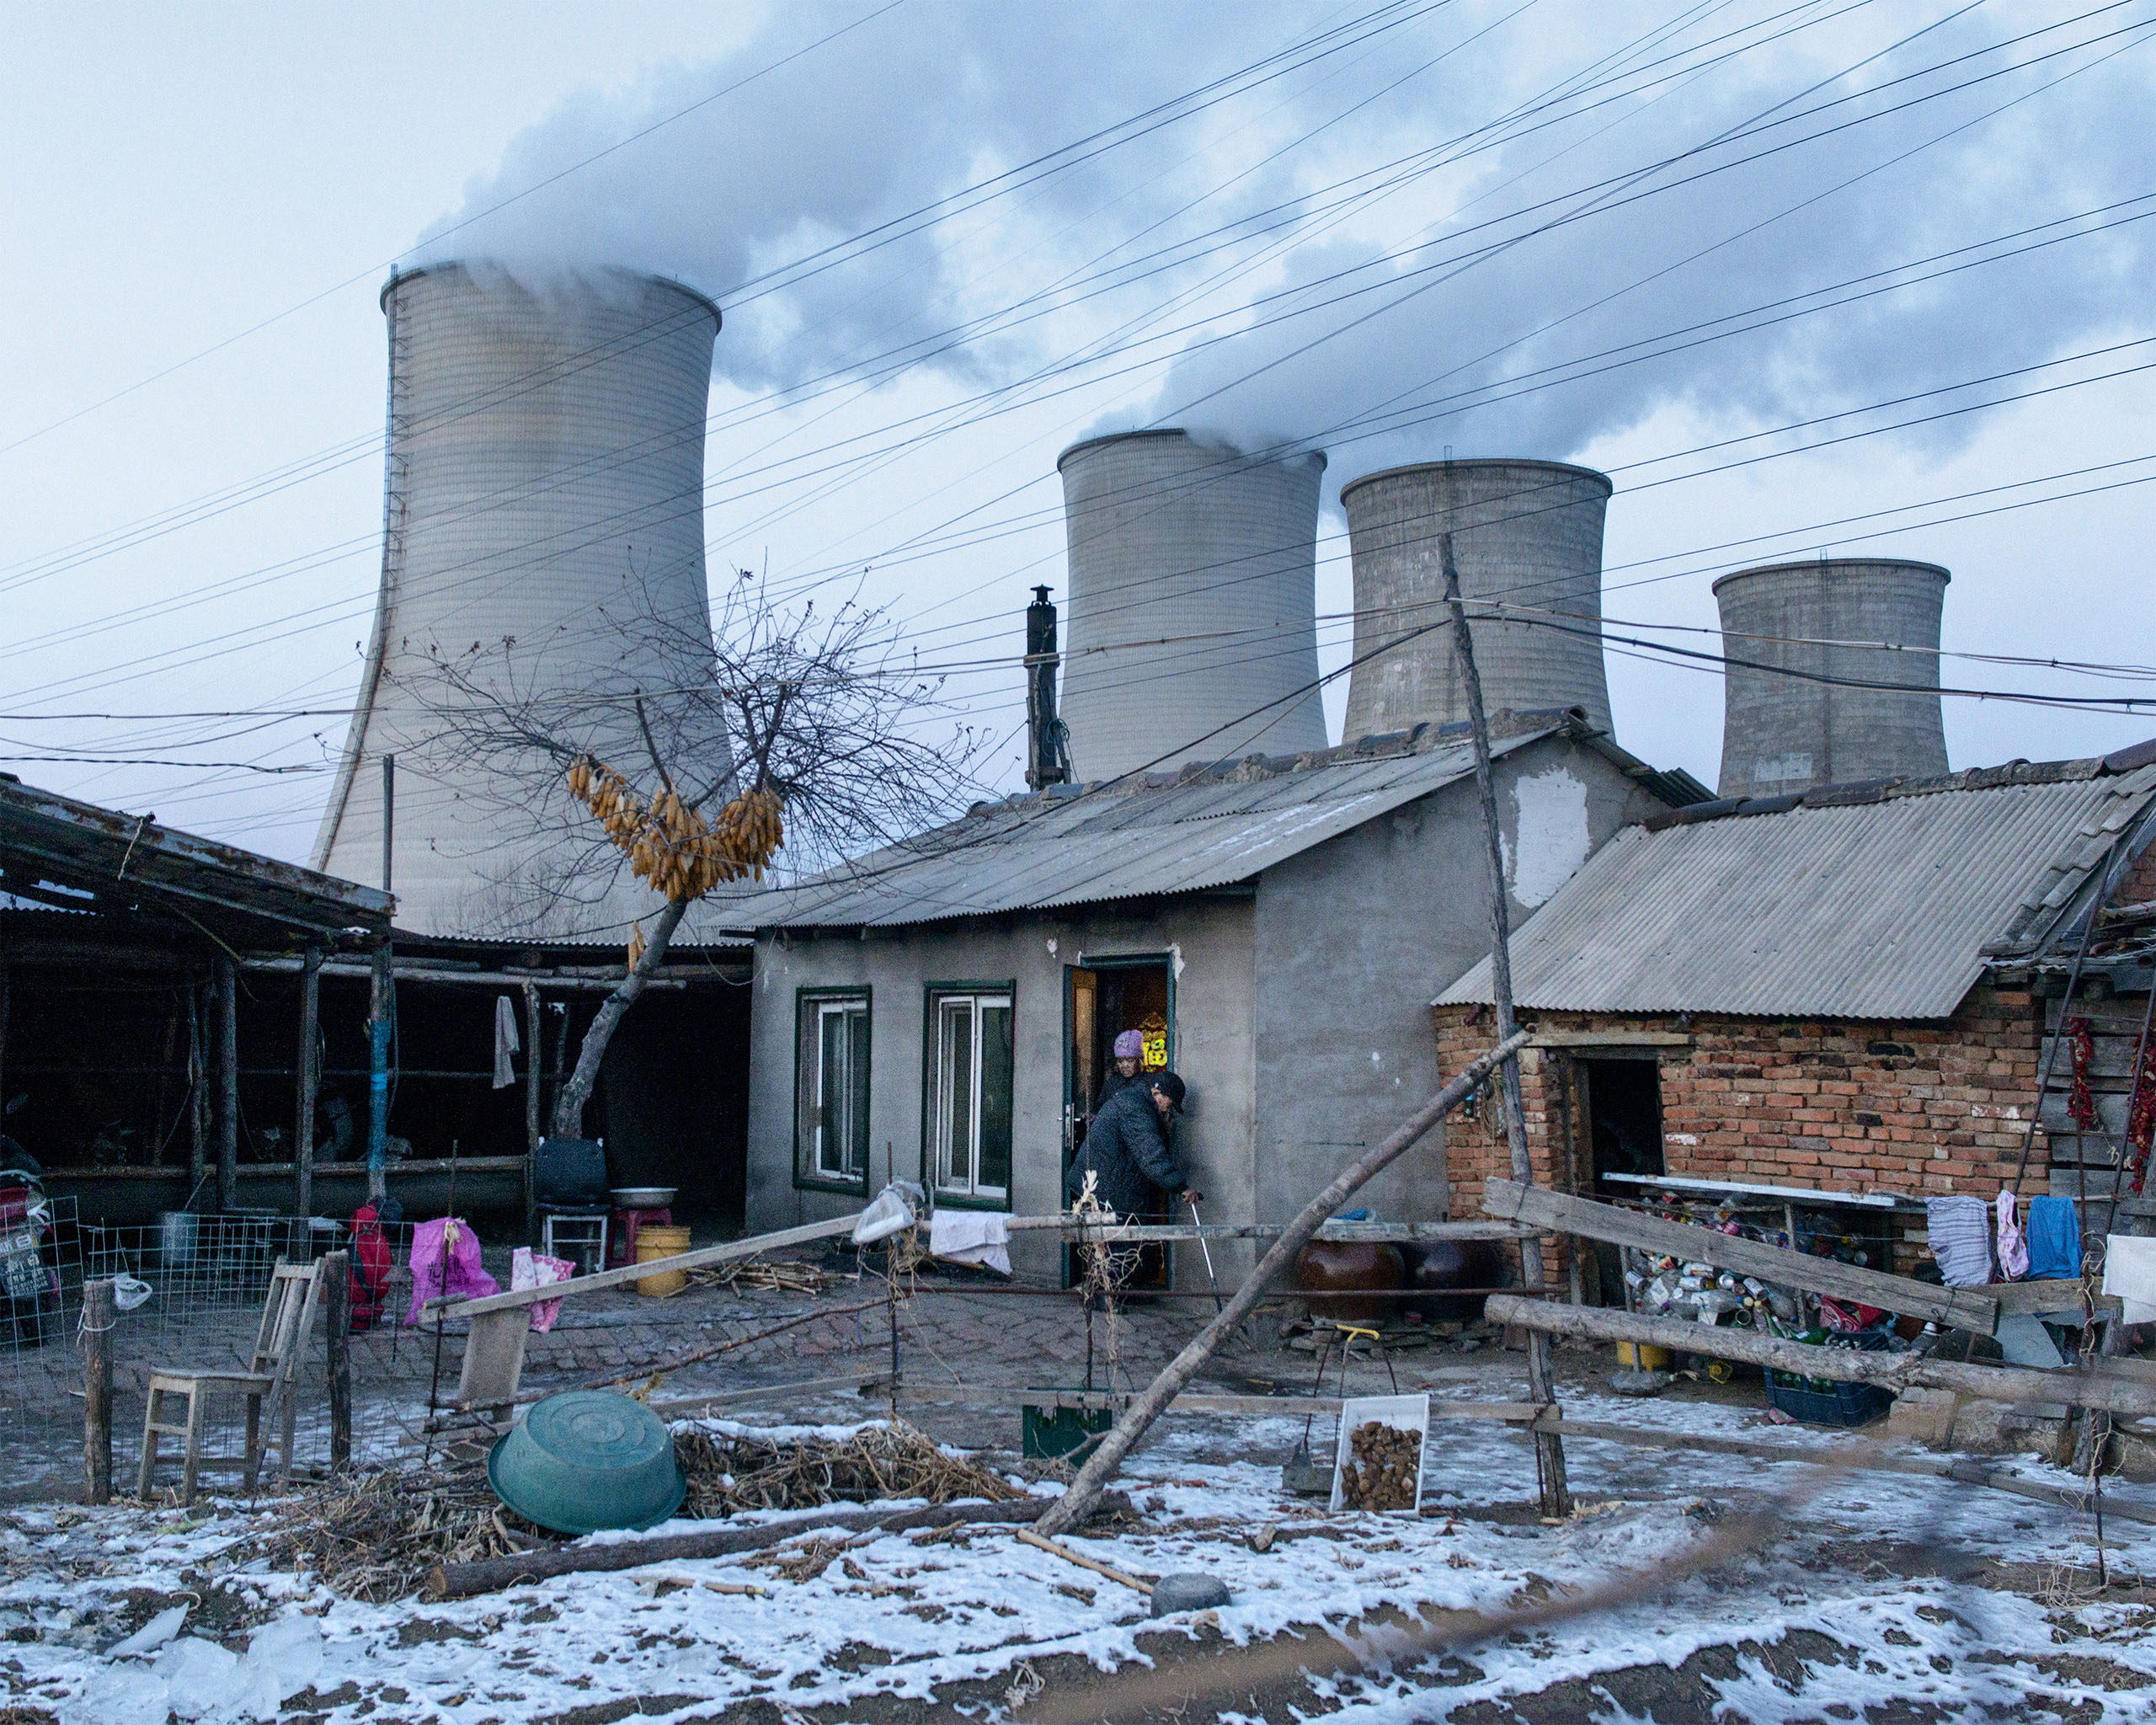 A farm situated next to a thermal power plant close to the North Korean border in Tumen, China.